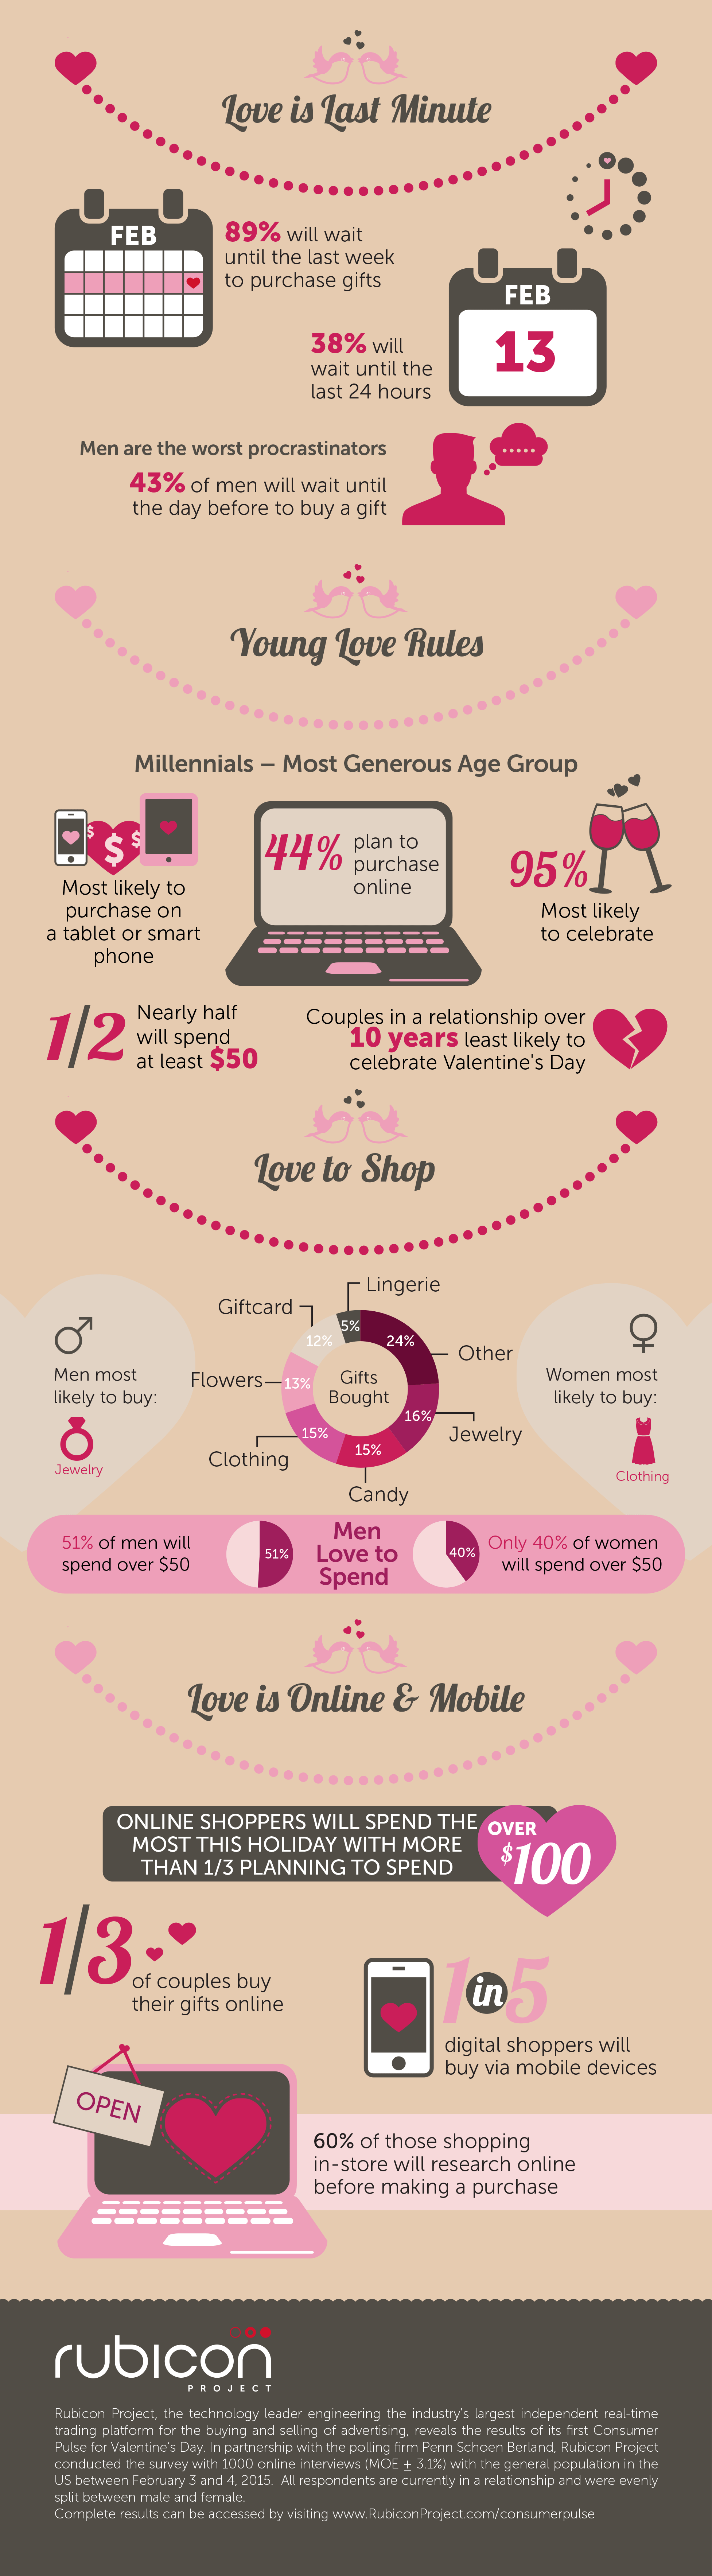 ValentinesDay2015_RP_Infographic.png